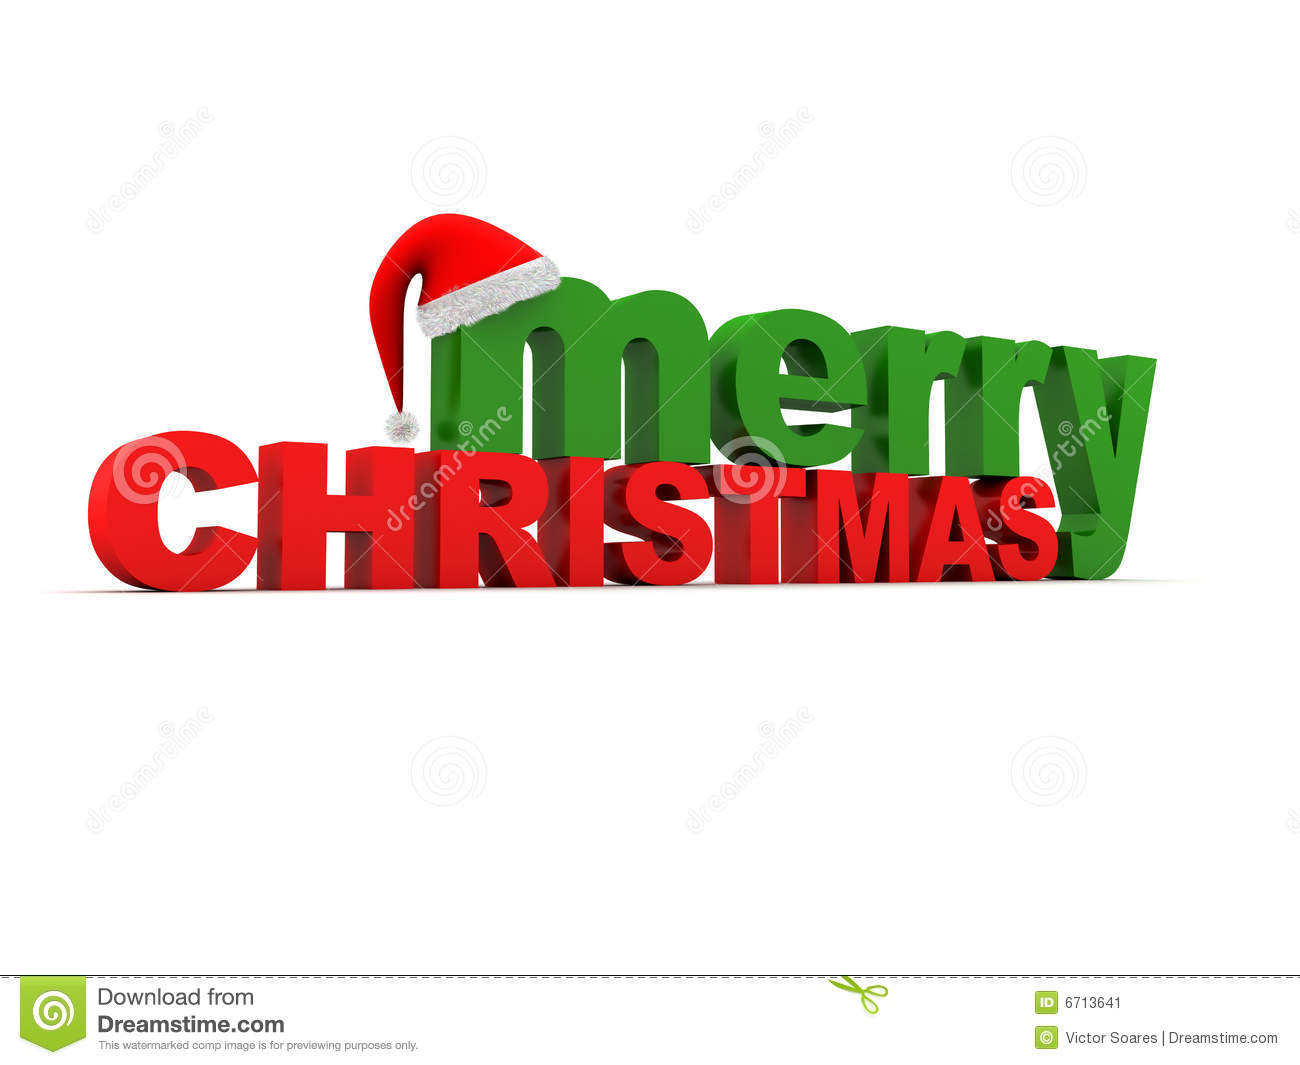 Merry Christmas Text stock illustration. Illustration of merry - 6713641